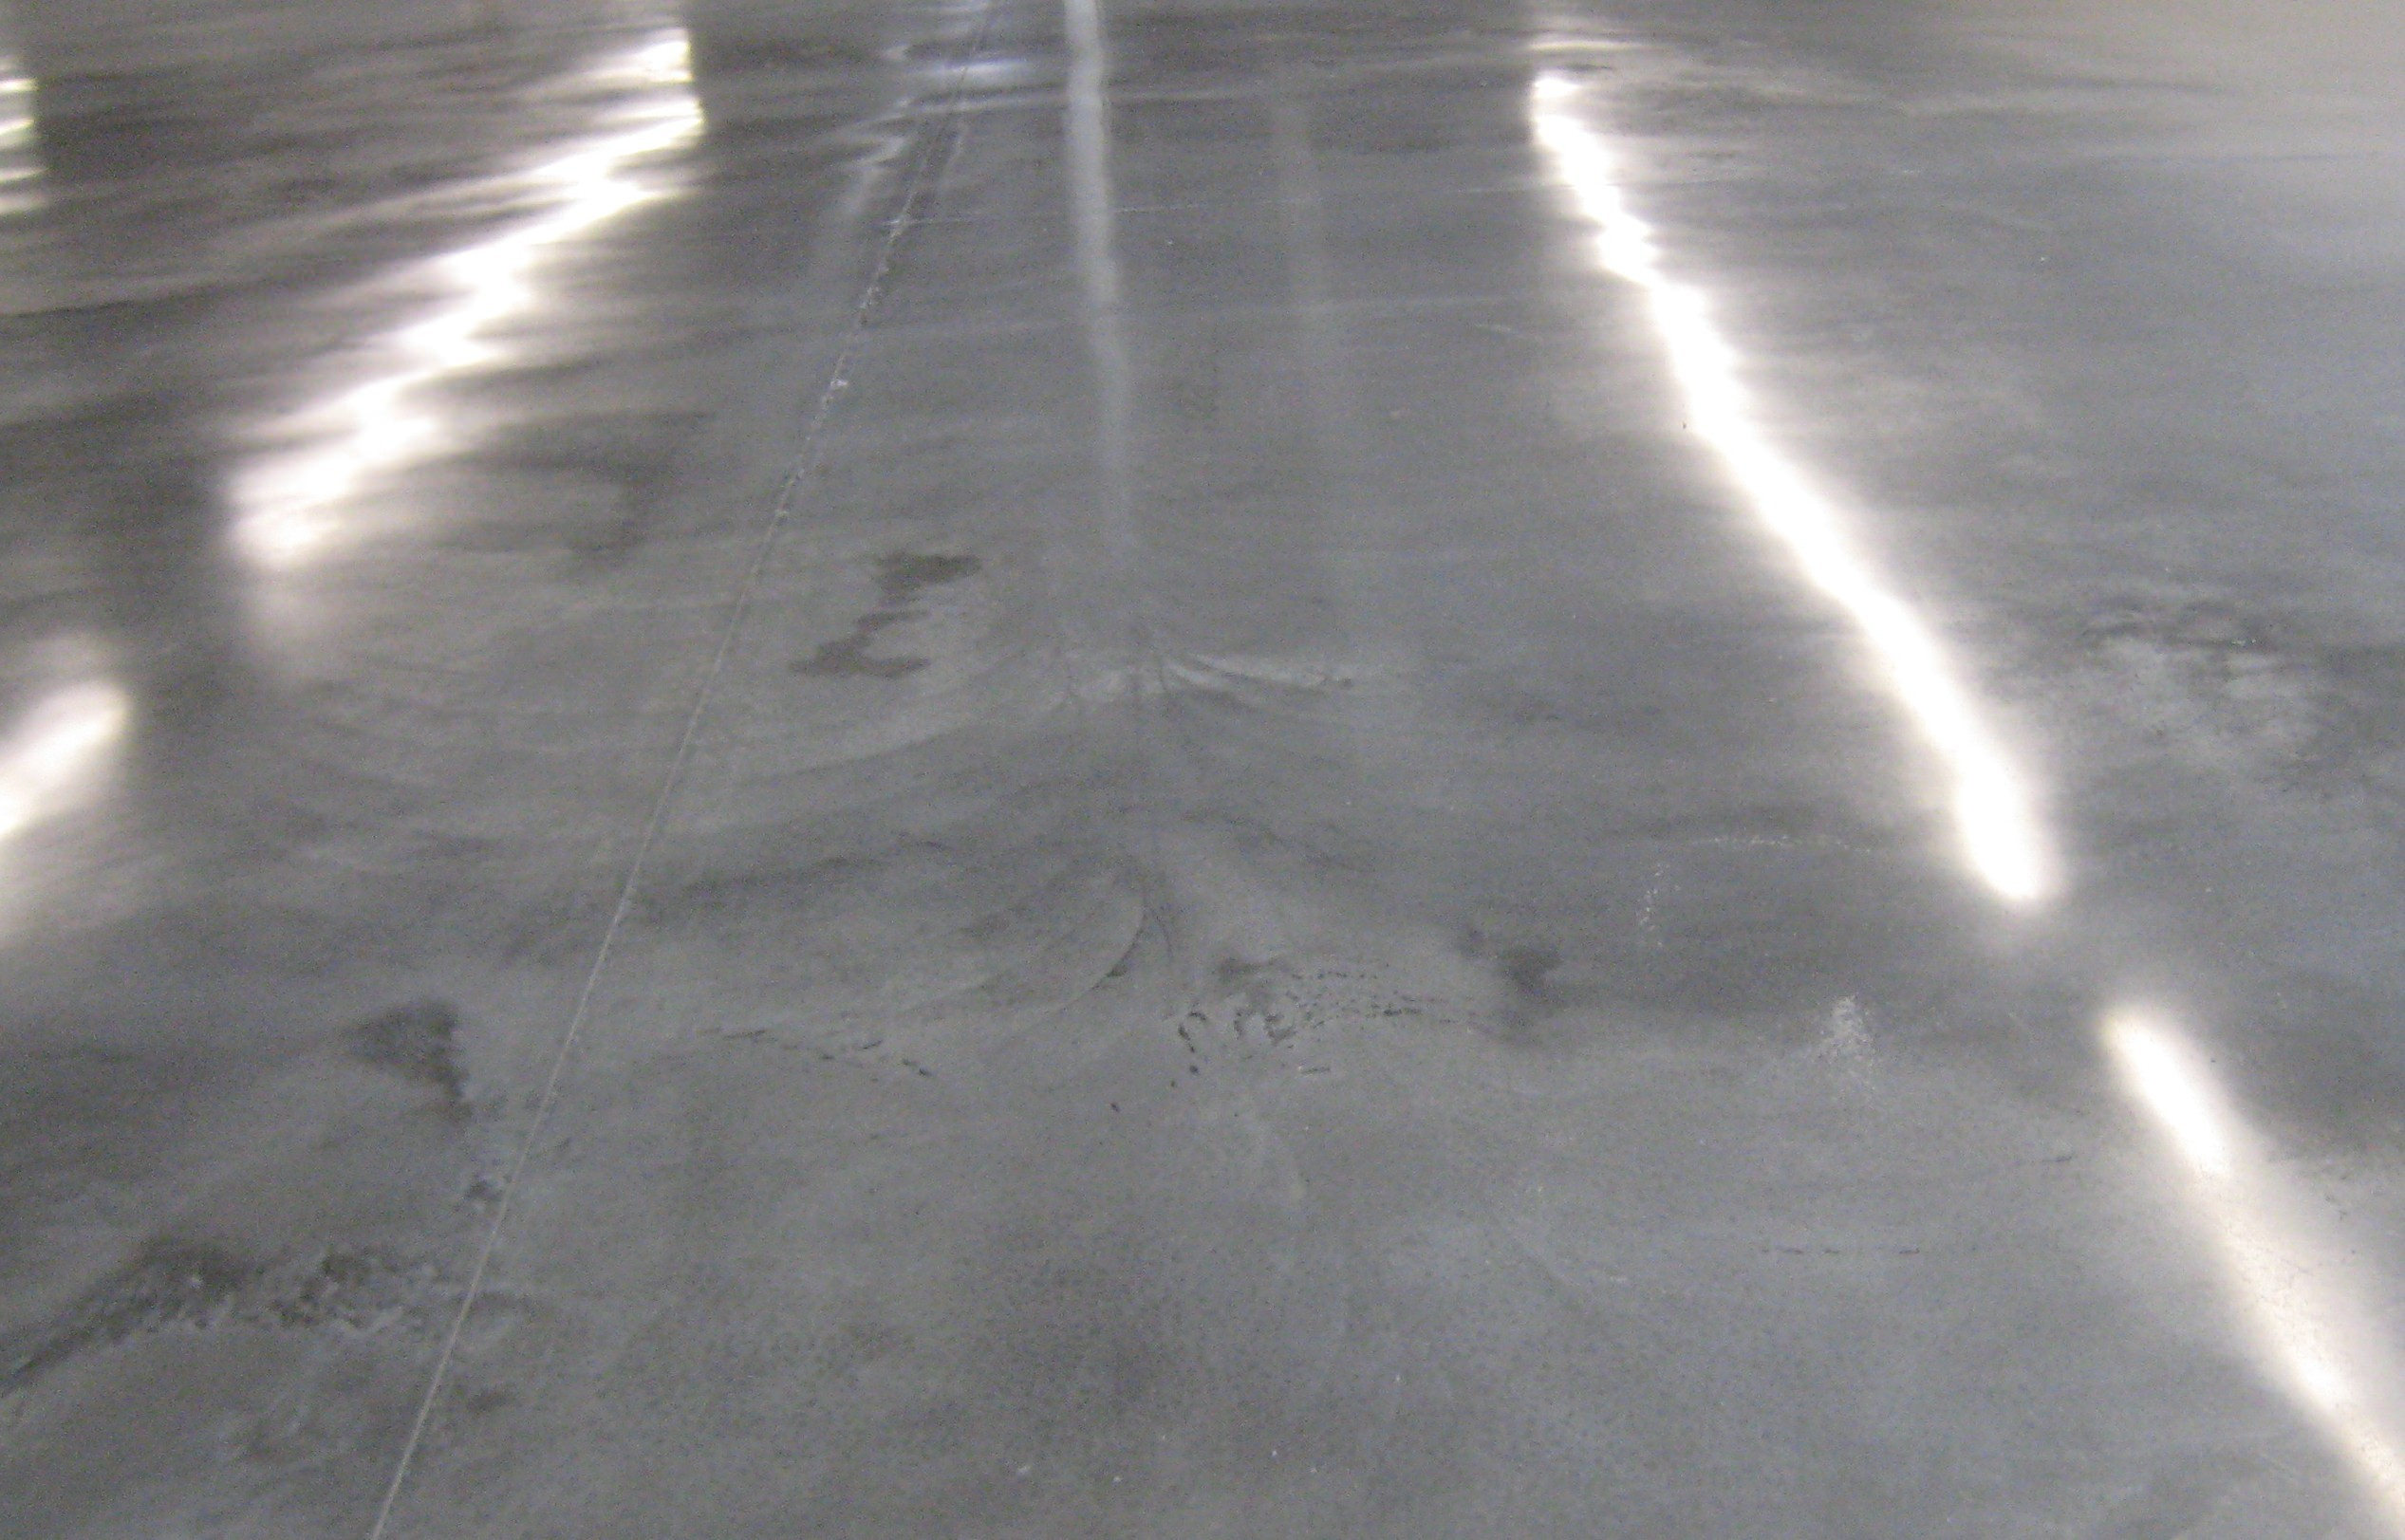 Concrete floor textures photoshop textures freecreatives for At floor or on floor